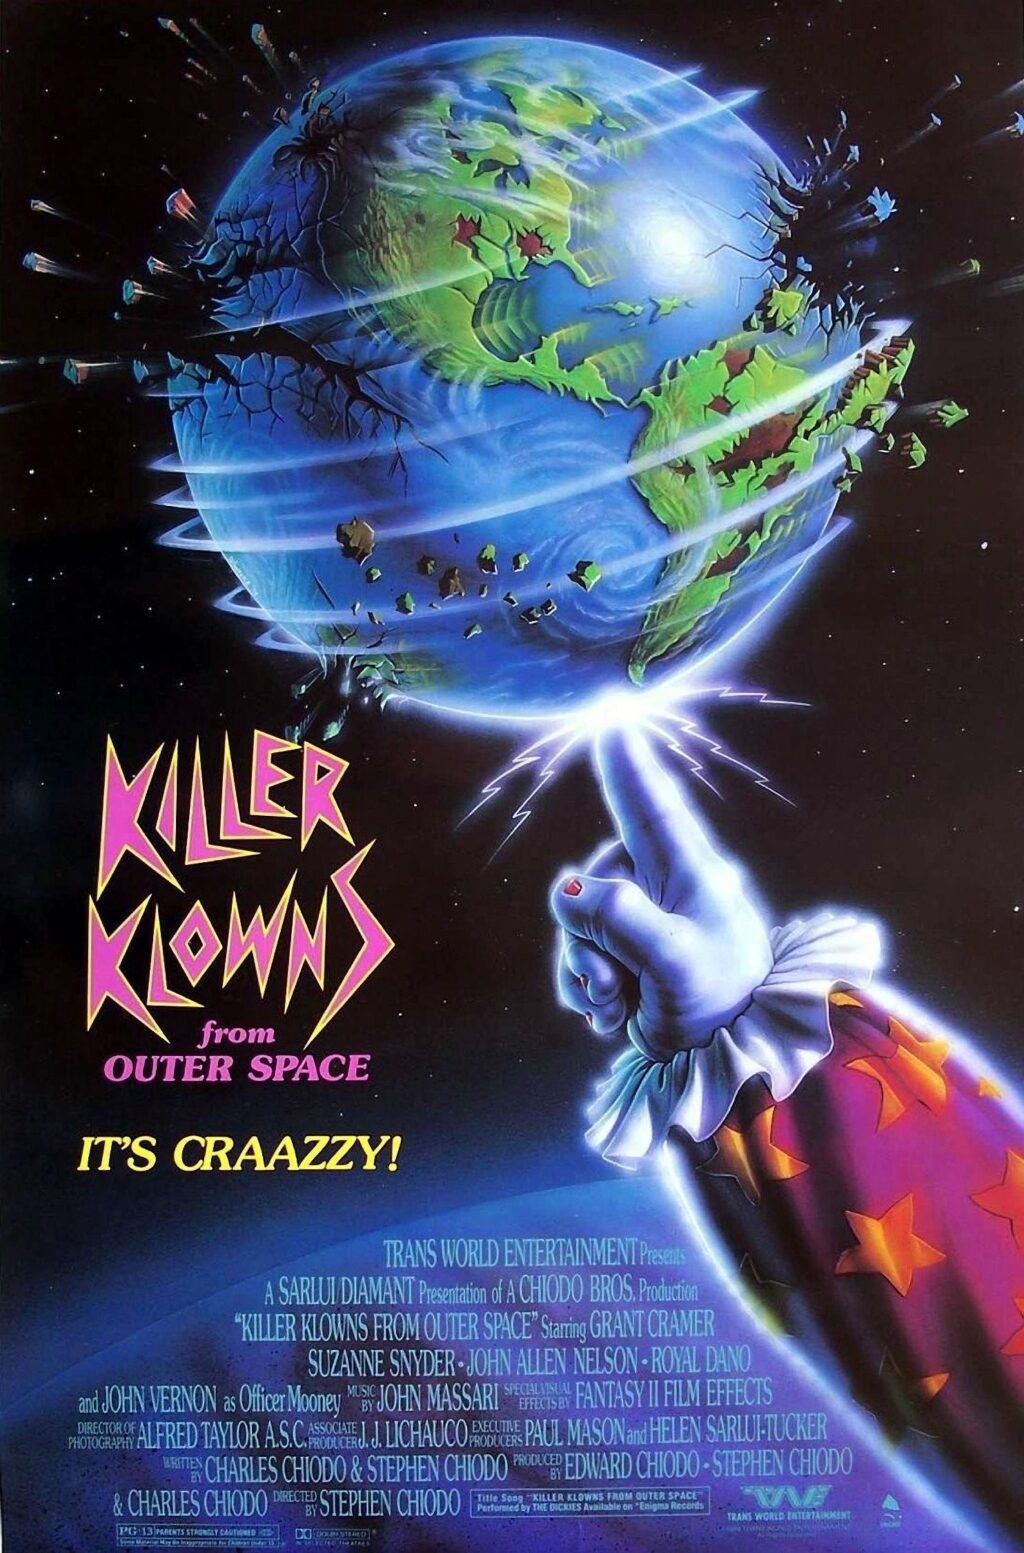 Killer klowns from outer space score being rerecorded with for Outer space studios